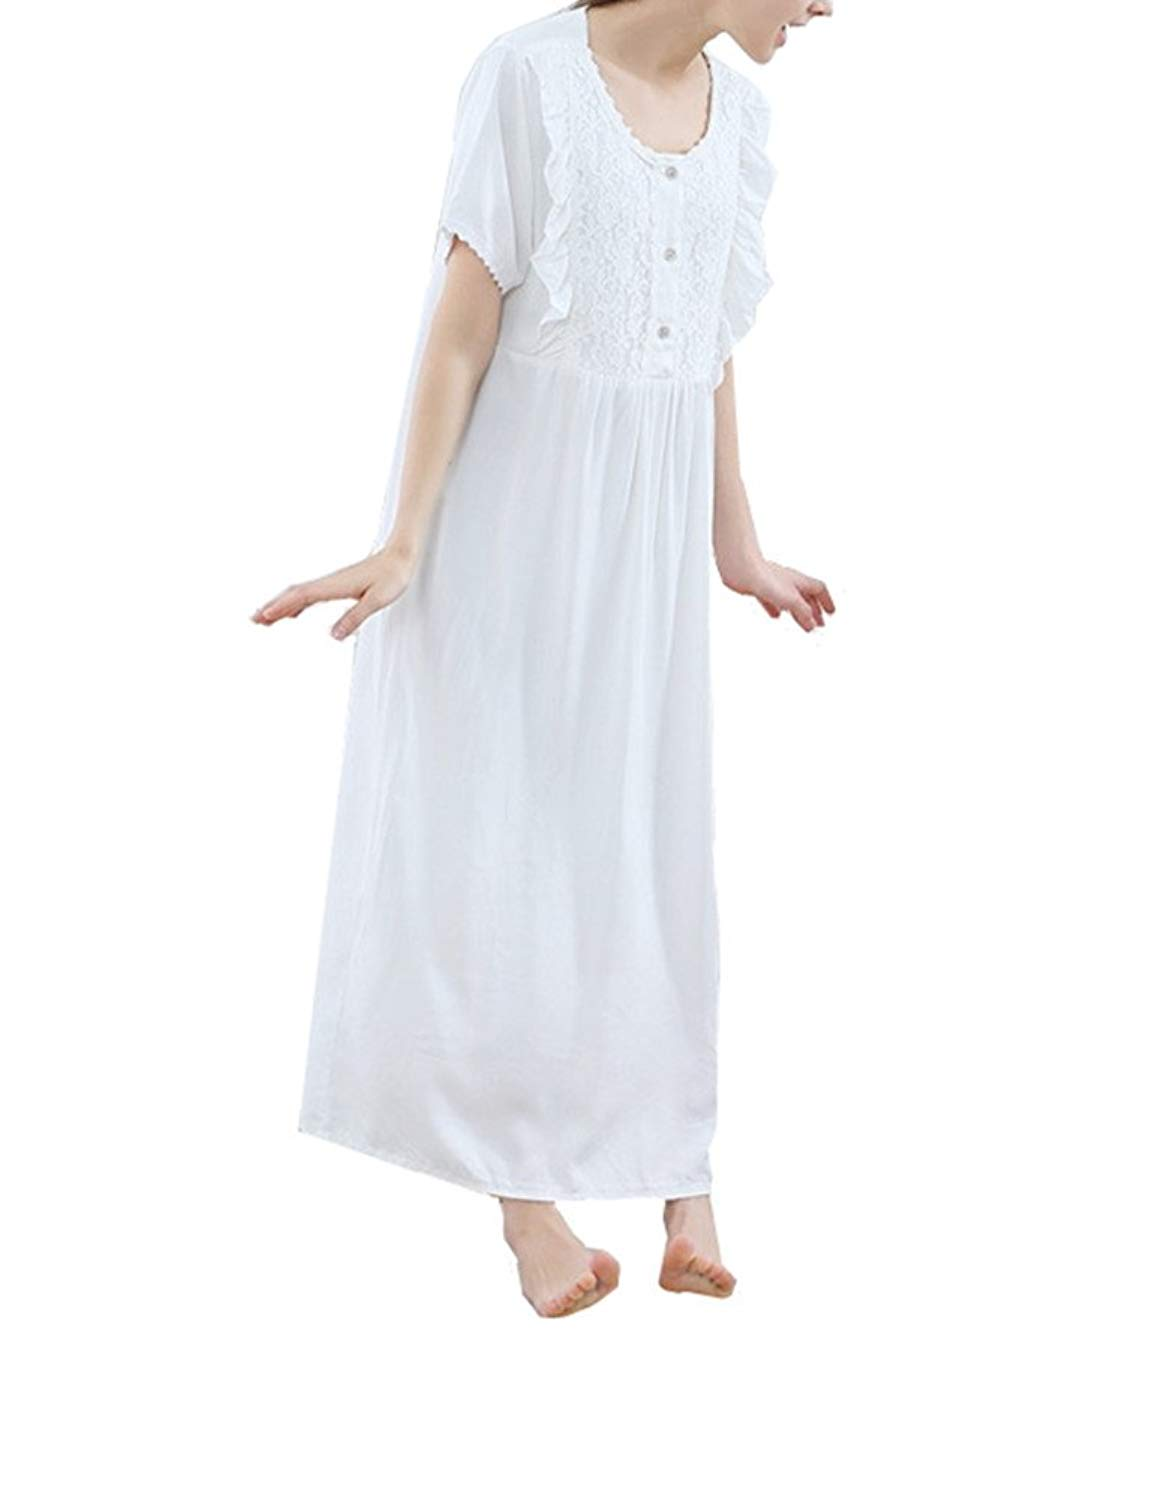 82fc7498fe Get Quotations · Womens Victorian Vintage Nightgown Short Sleeve Cotton  Sleepwear White